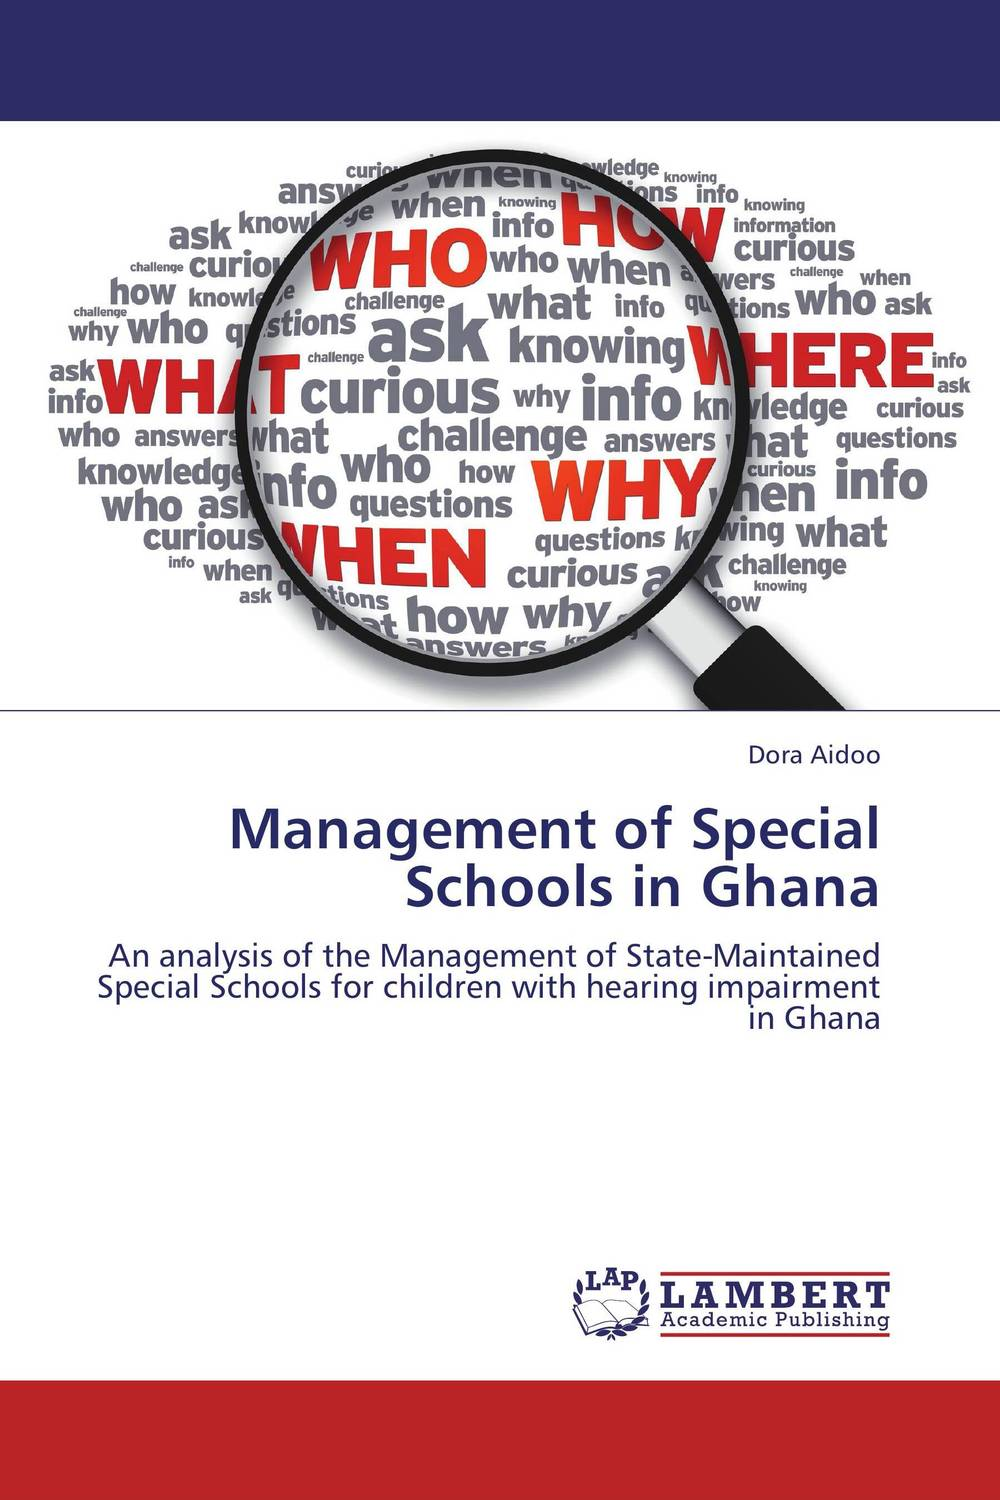 Management of Special Schools in Ghana dora aidoo management of special schools in ghana